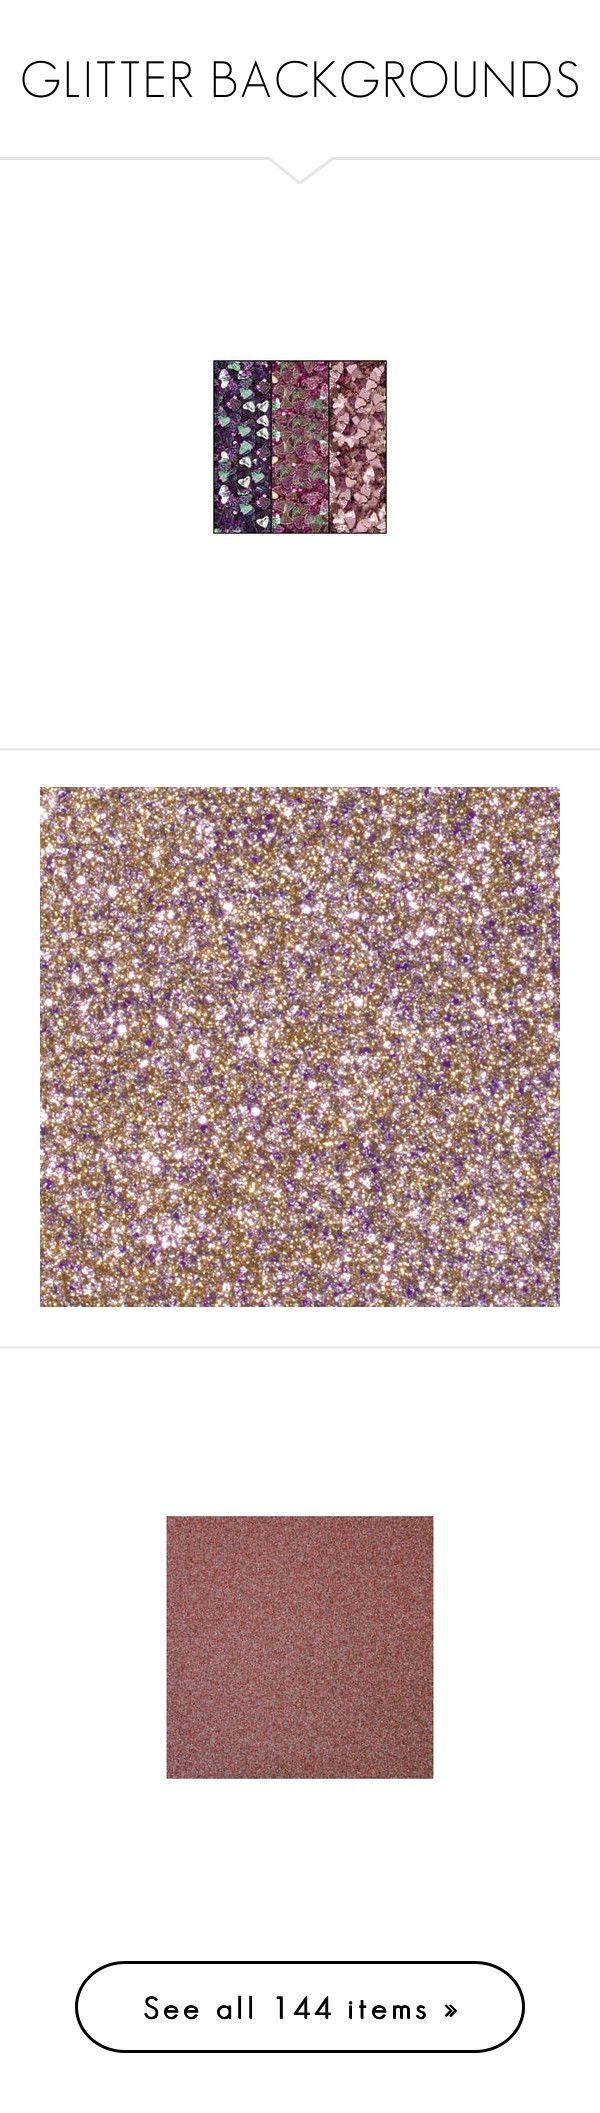 """""""GLITTER BACKGROUNDS"""" by caroline-brazeau ❤ liked on Polyvore featuring backgrounds, wallpaper, - backgrounds, pictures, pattern, filler, glitter, glitter background, frames & background and glitter backgrounds"""